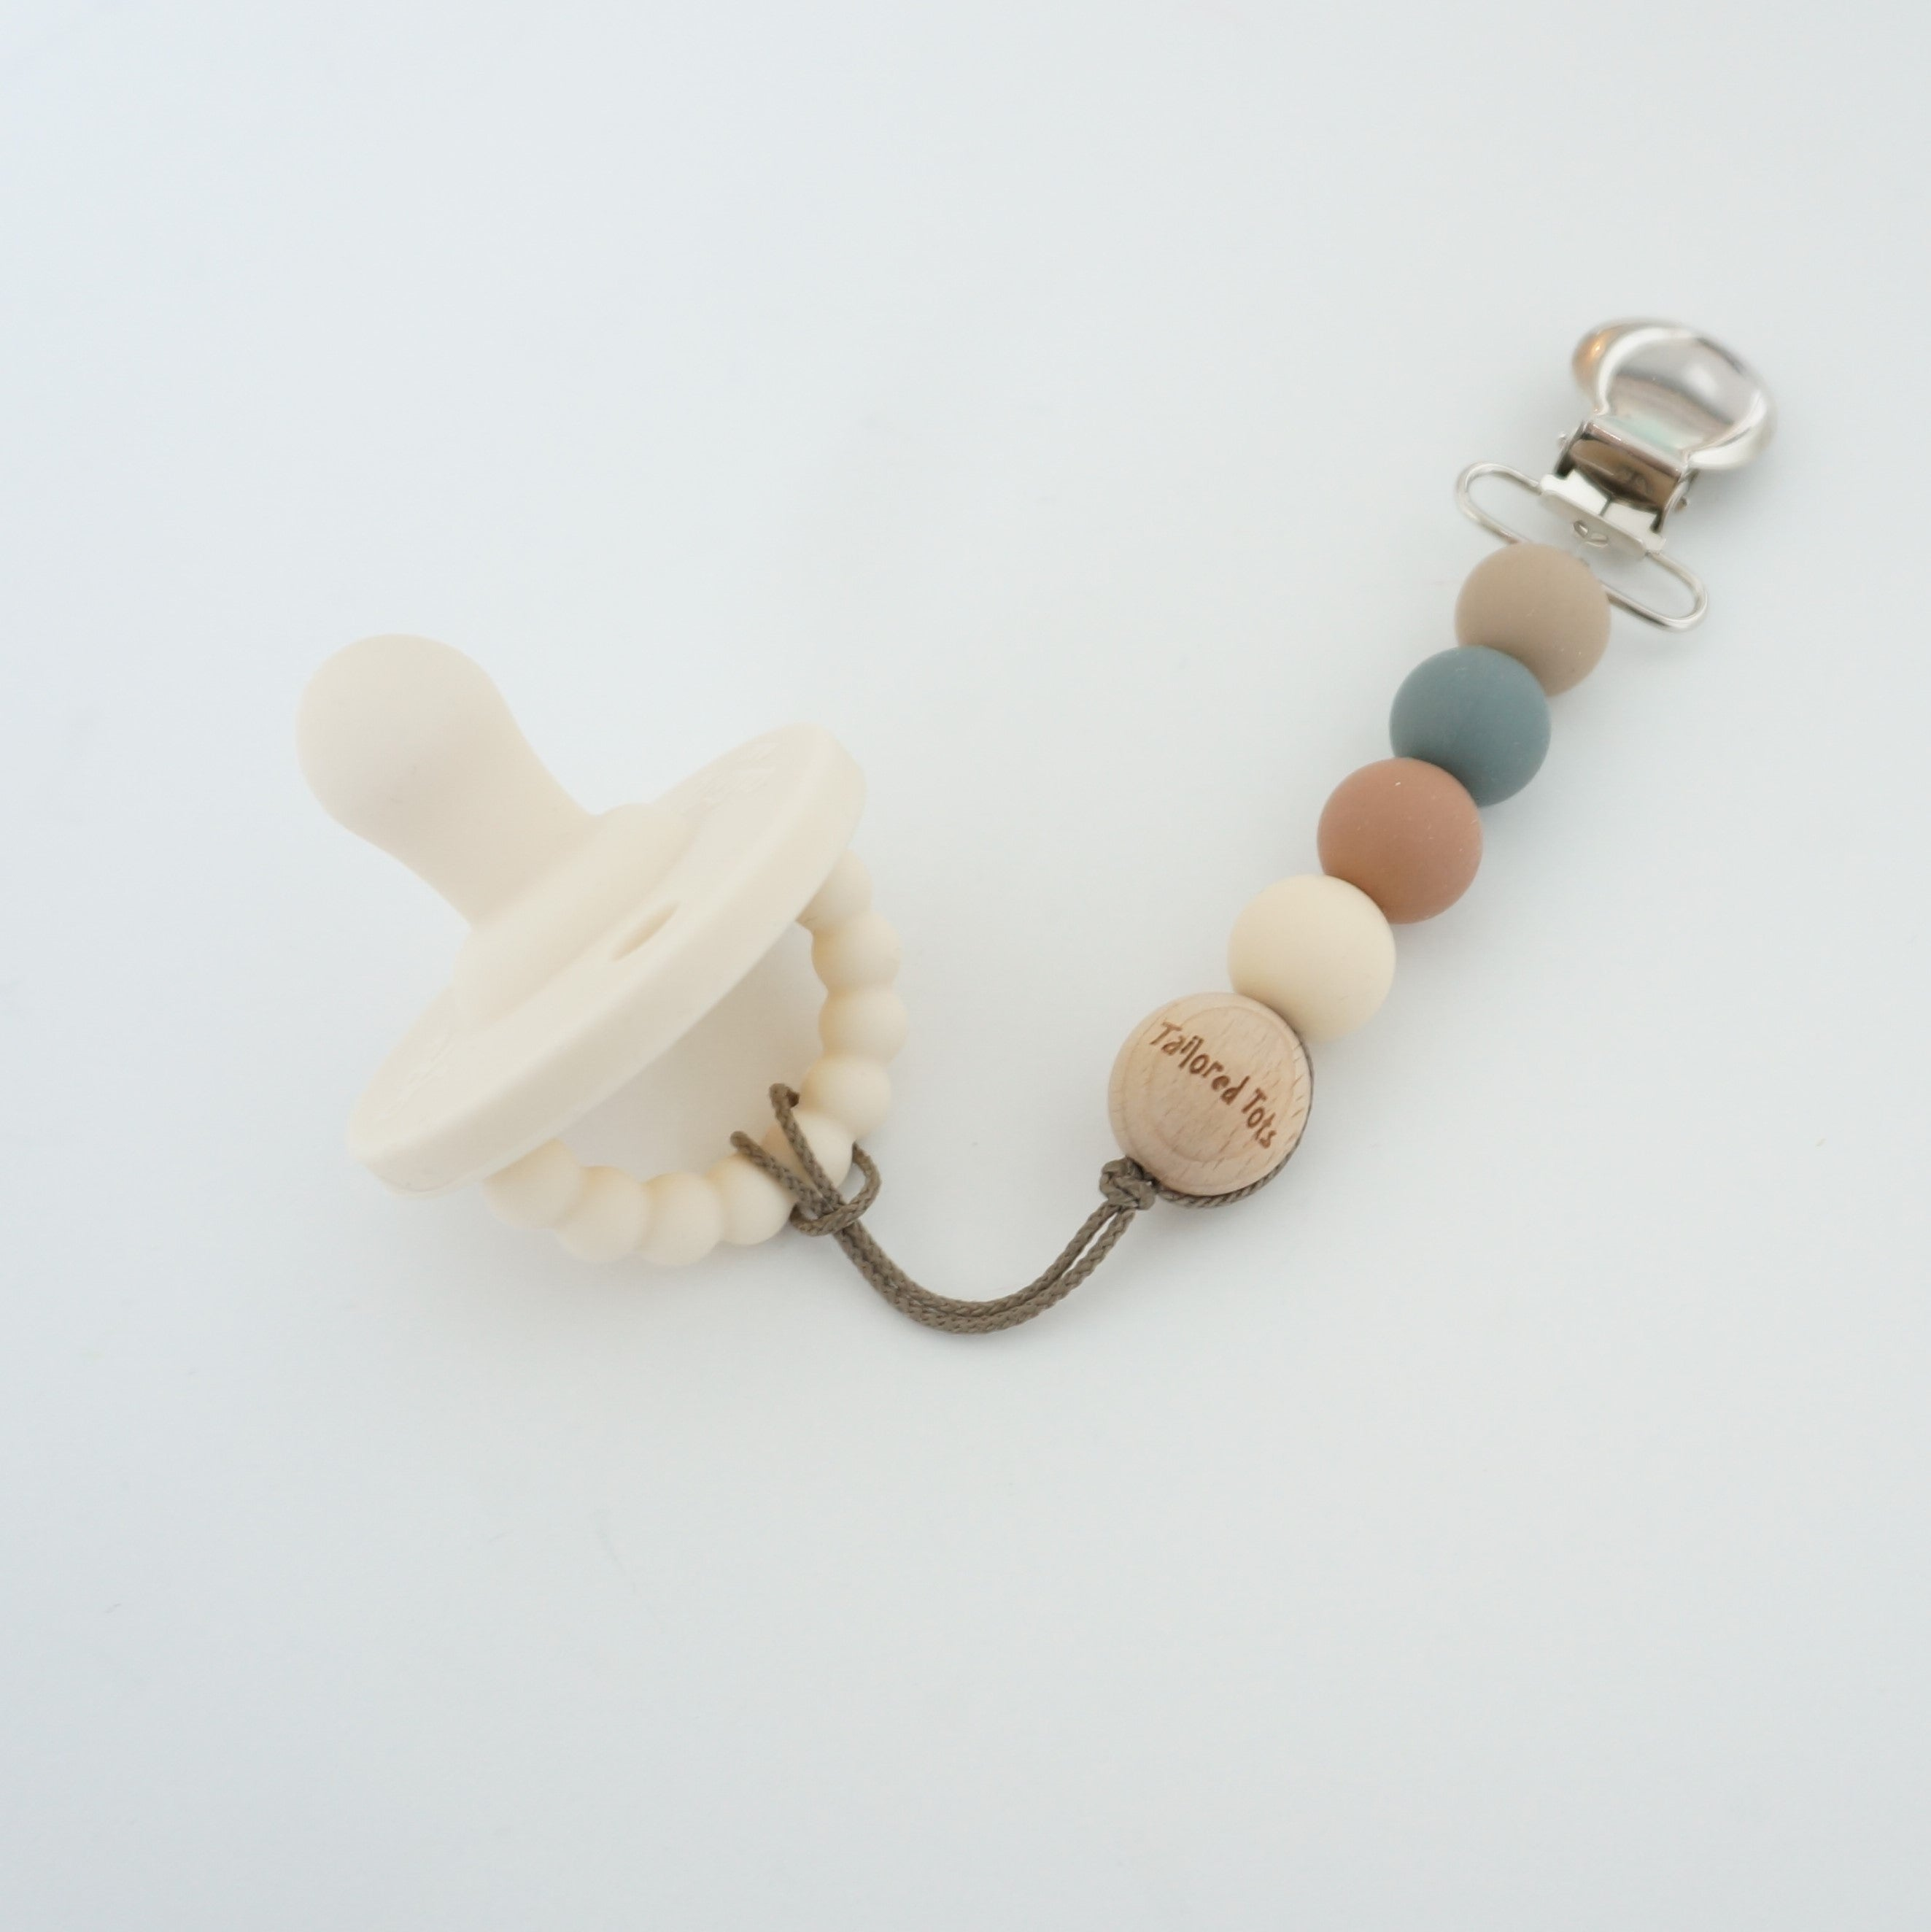 Micro Soother || Teether clip